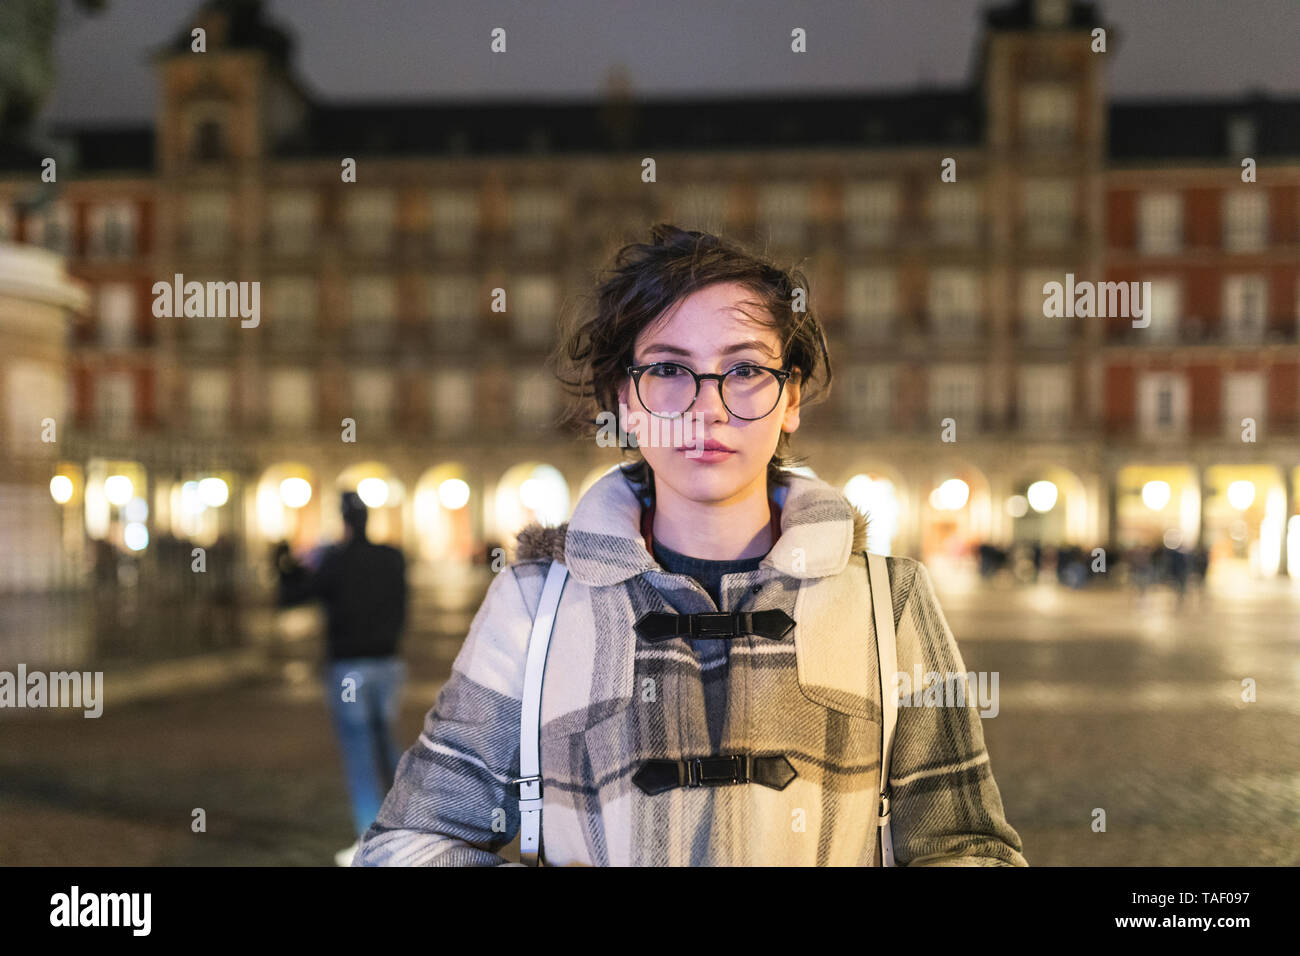 Spain, Madrid, portrait of young woman on Plaza Mayor - Stock Image